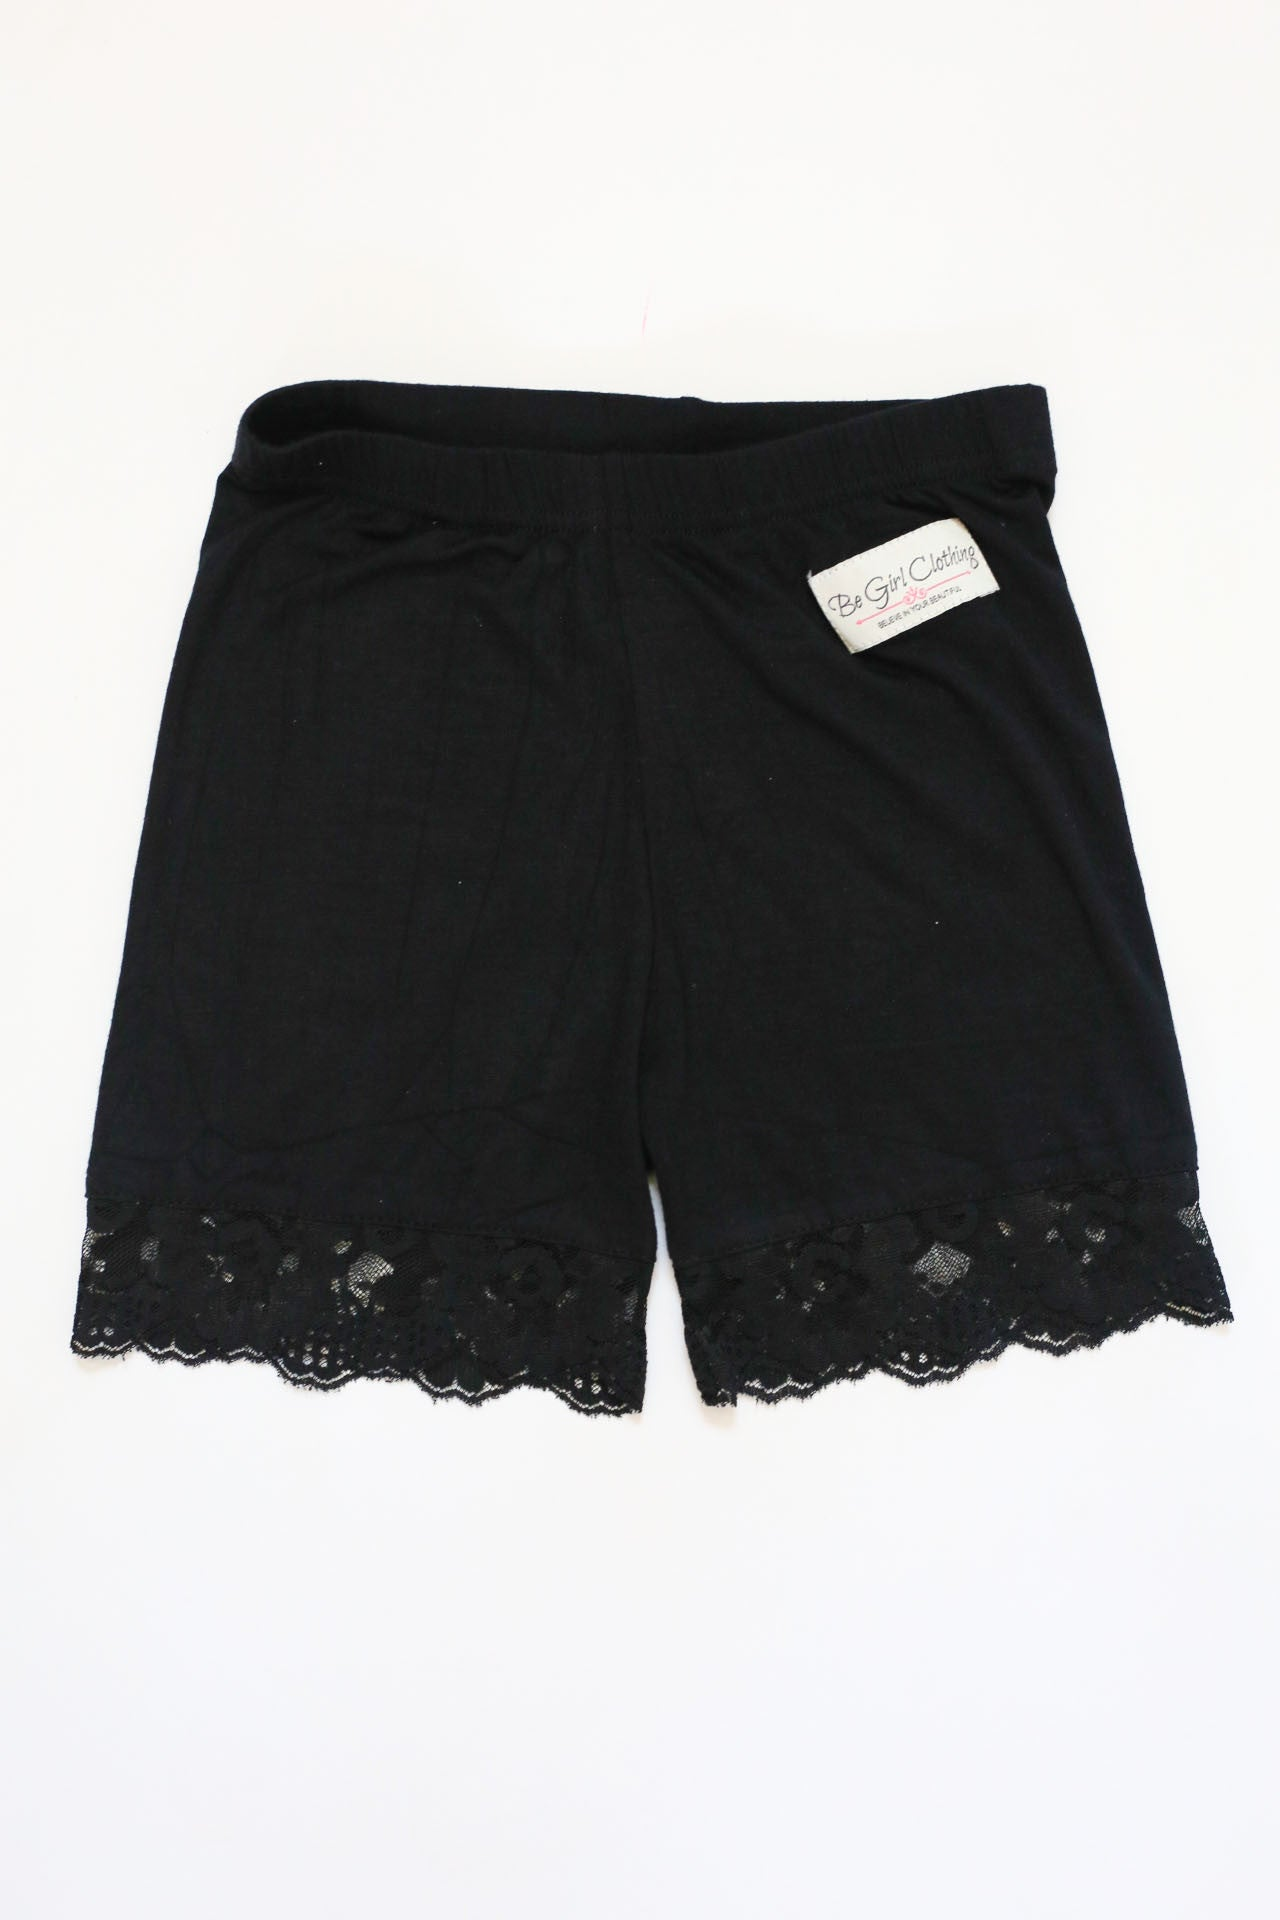 Black Undershorts - Be Girl Clothing